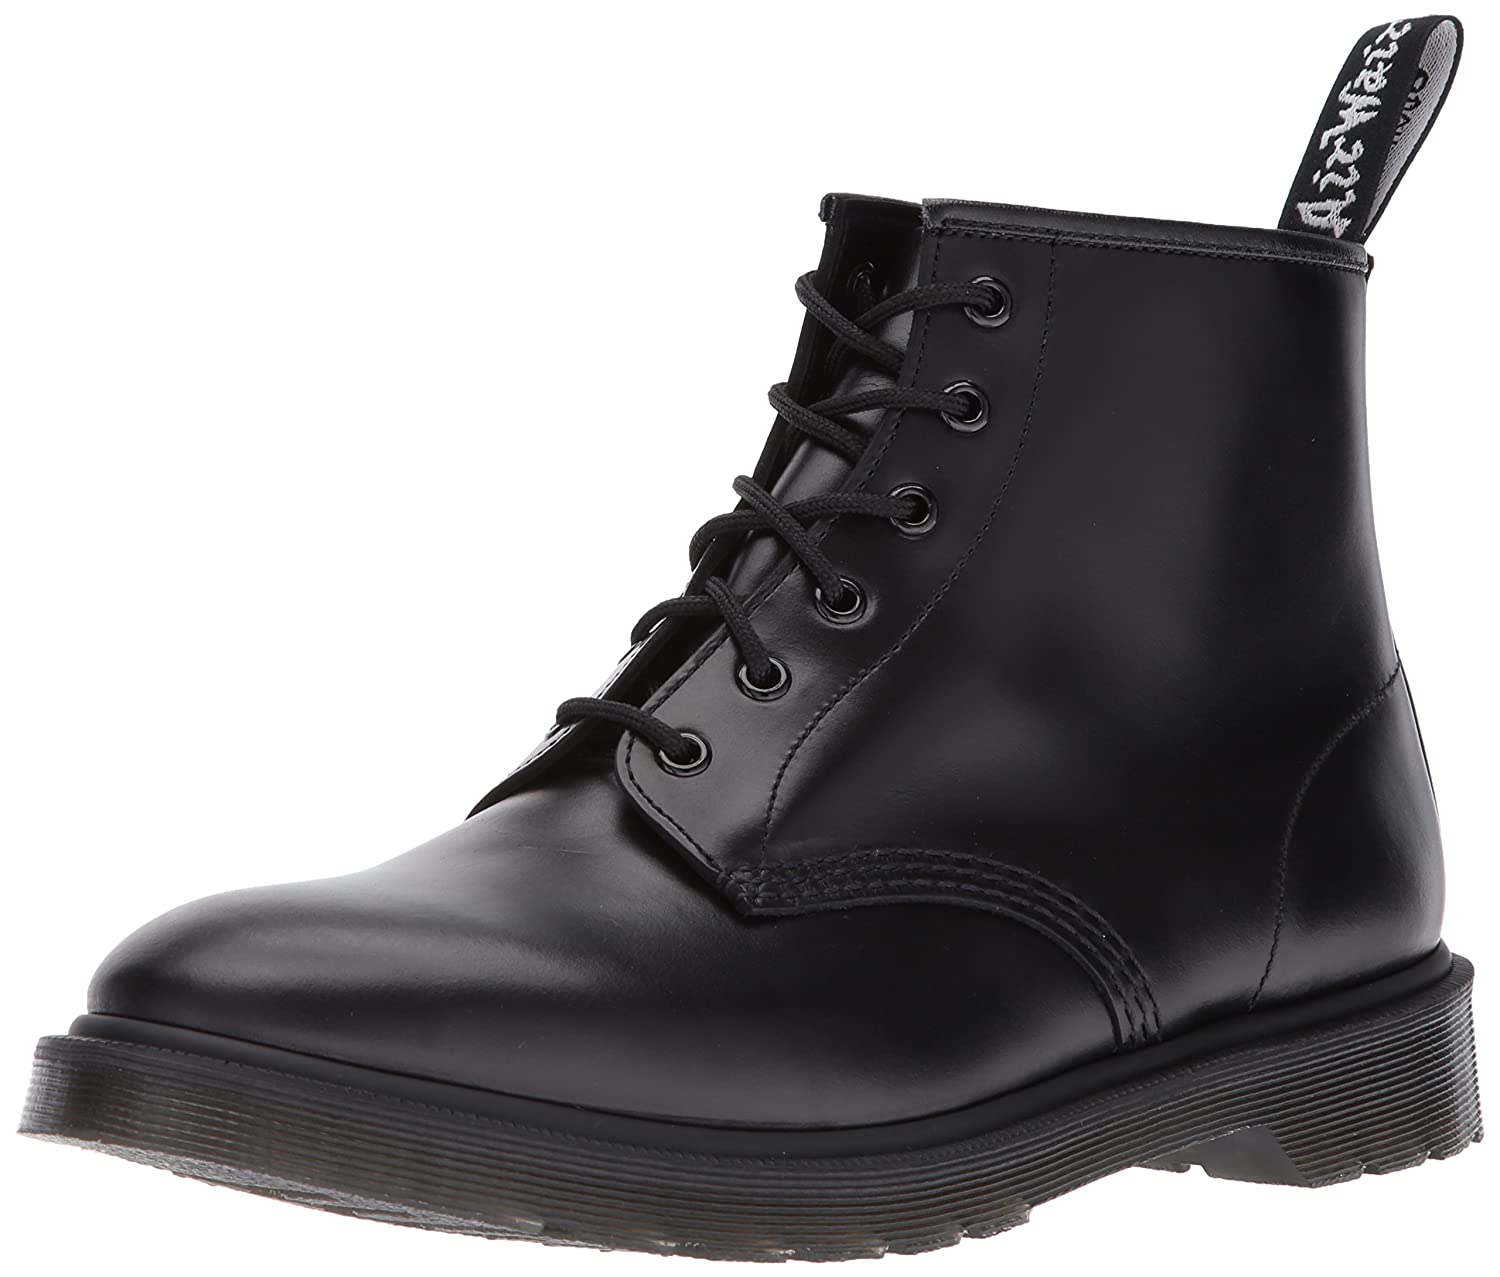 Dr. Martens 101 BR Fashion Boot 22700601